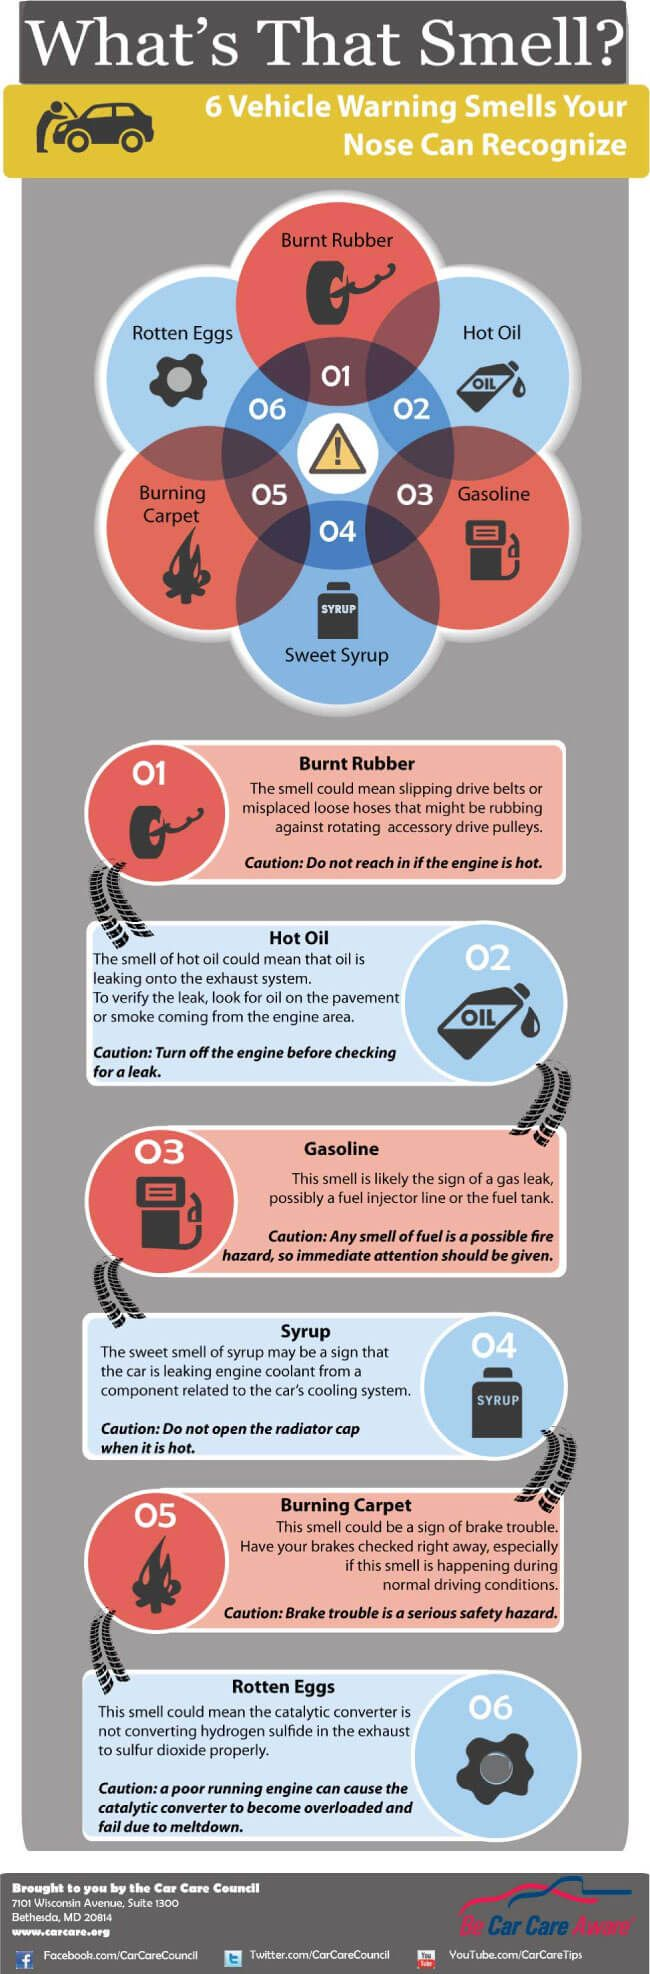 Tips to Recognize 6 Car Warning Smells Tips Tipsographic